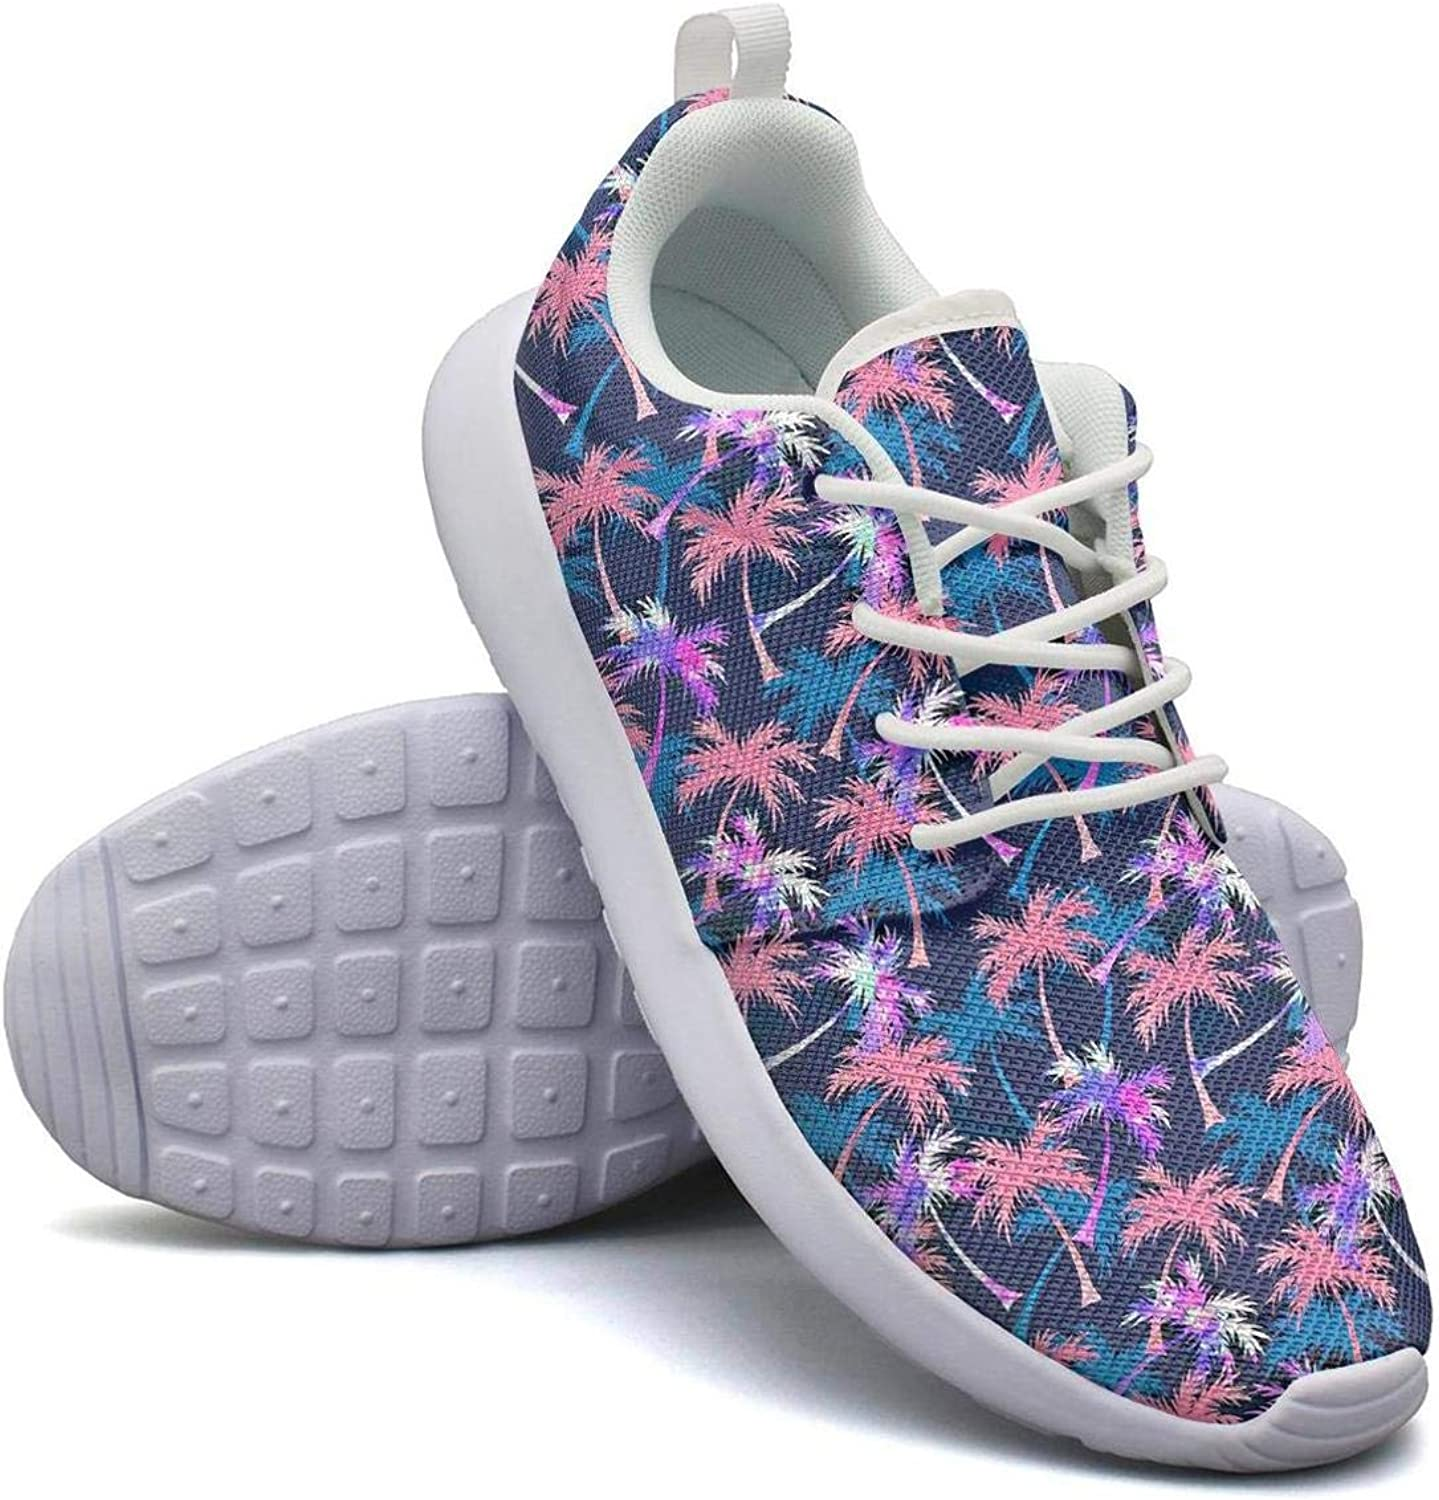 CHALi99 Womens Lightweight Mesh shoes Tropical Coconut Palm Tree Silhouettes Sneakers Running Shock Absorbing